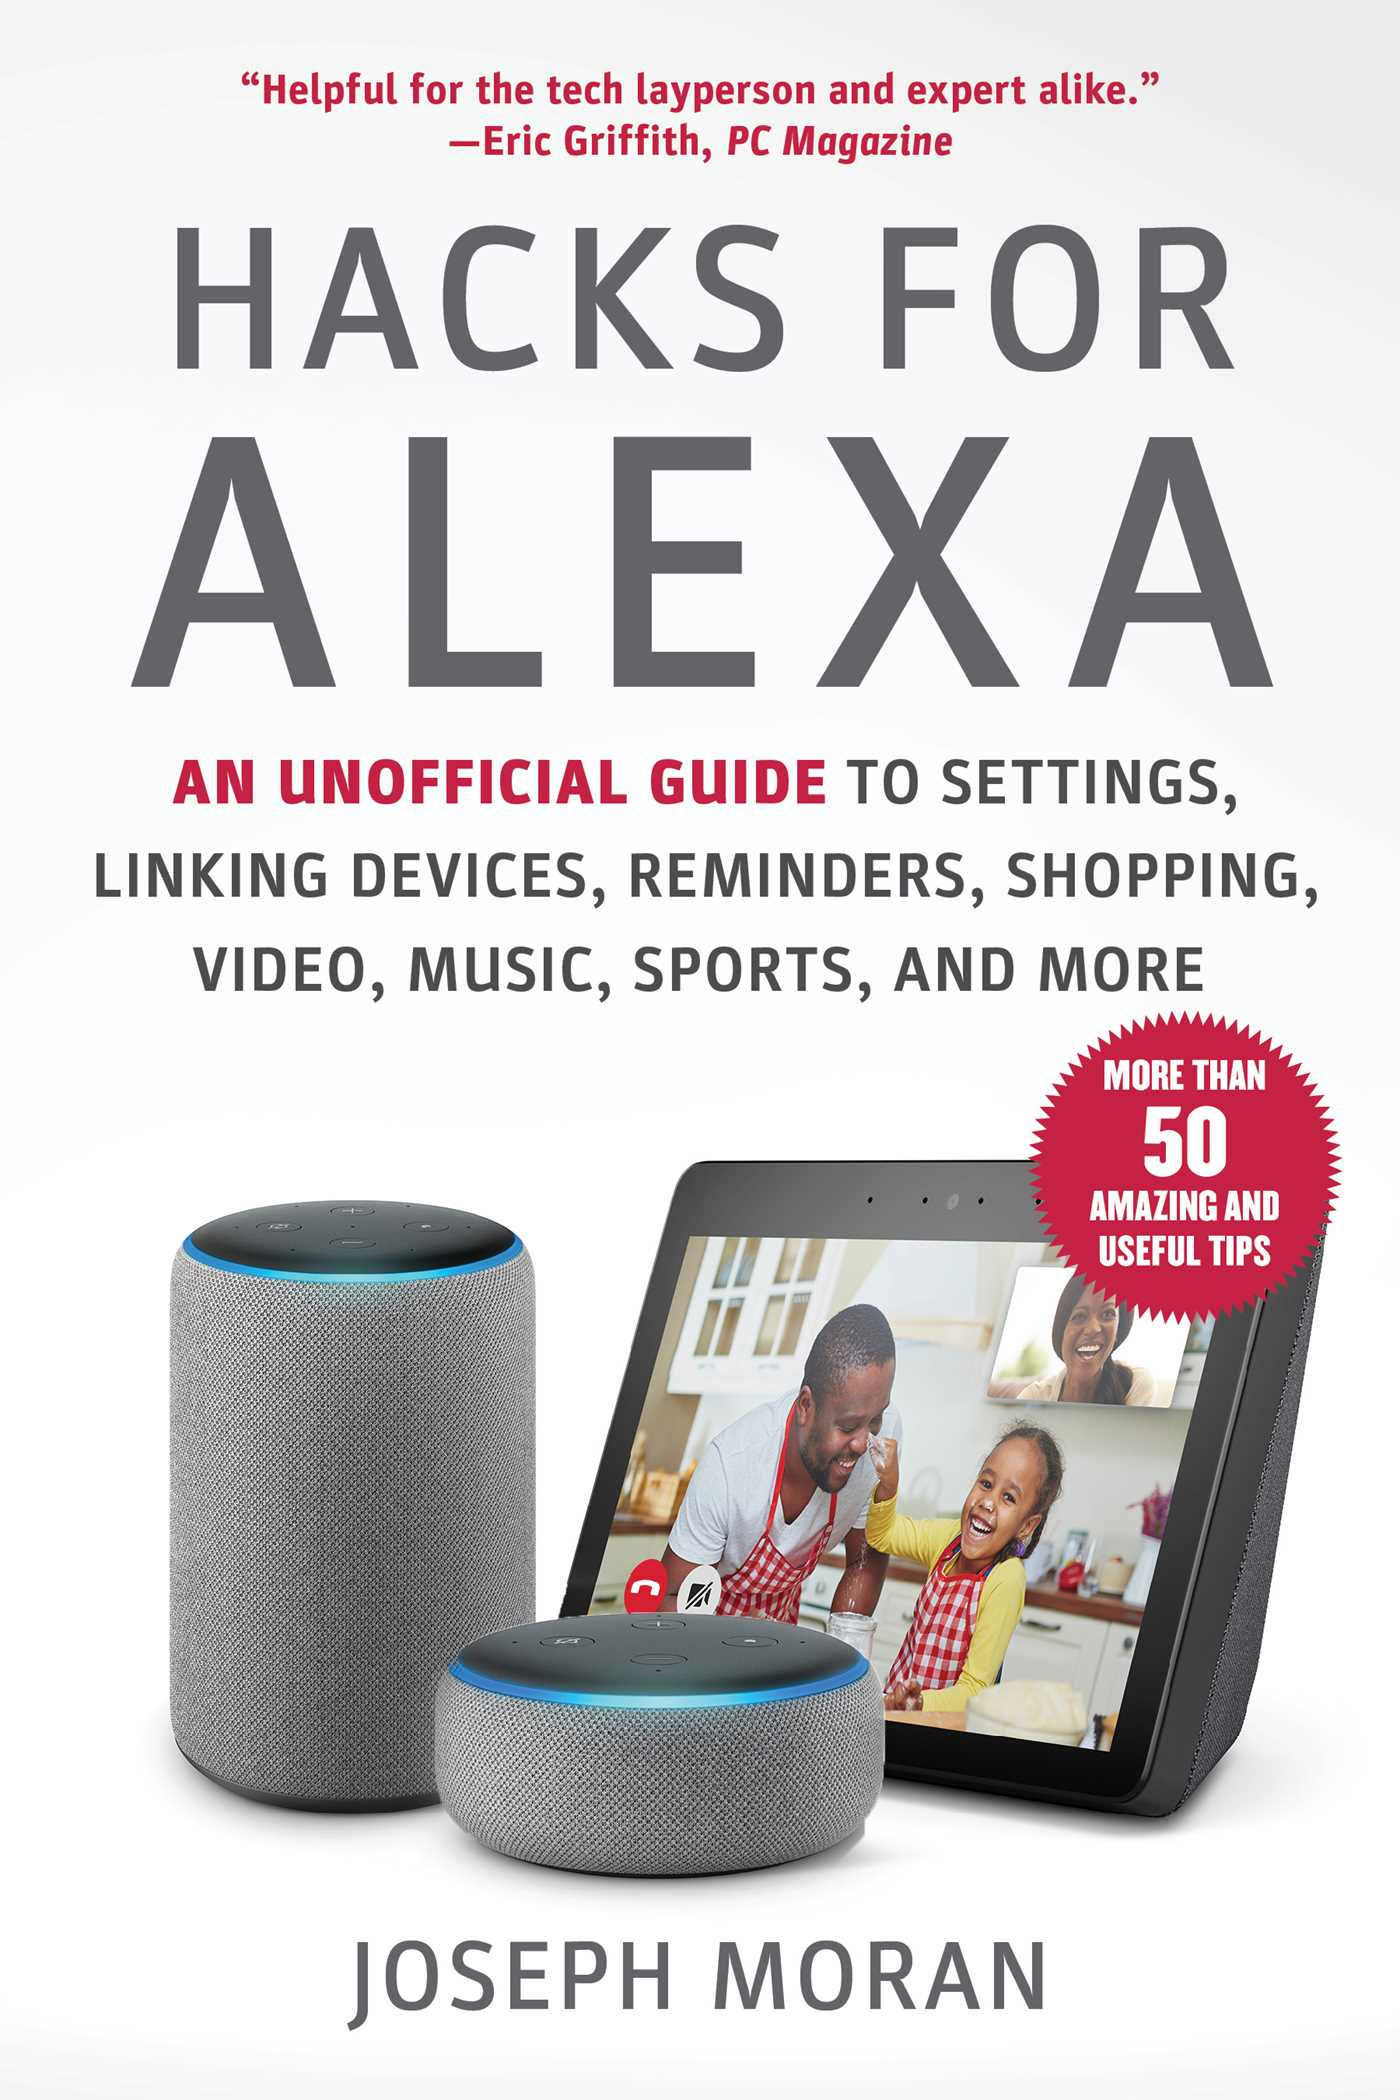 Hacks for Alexa